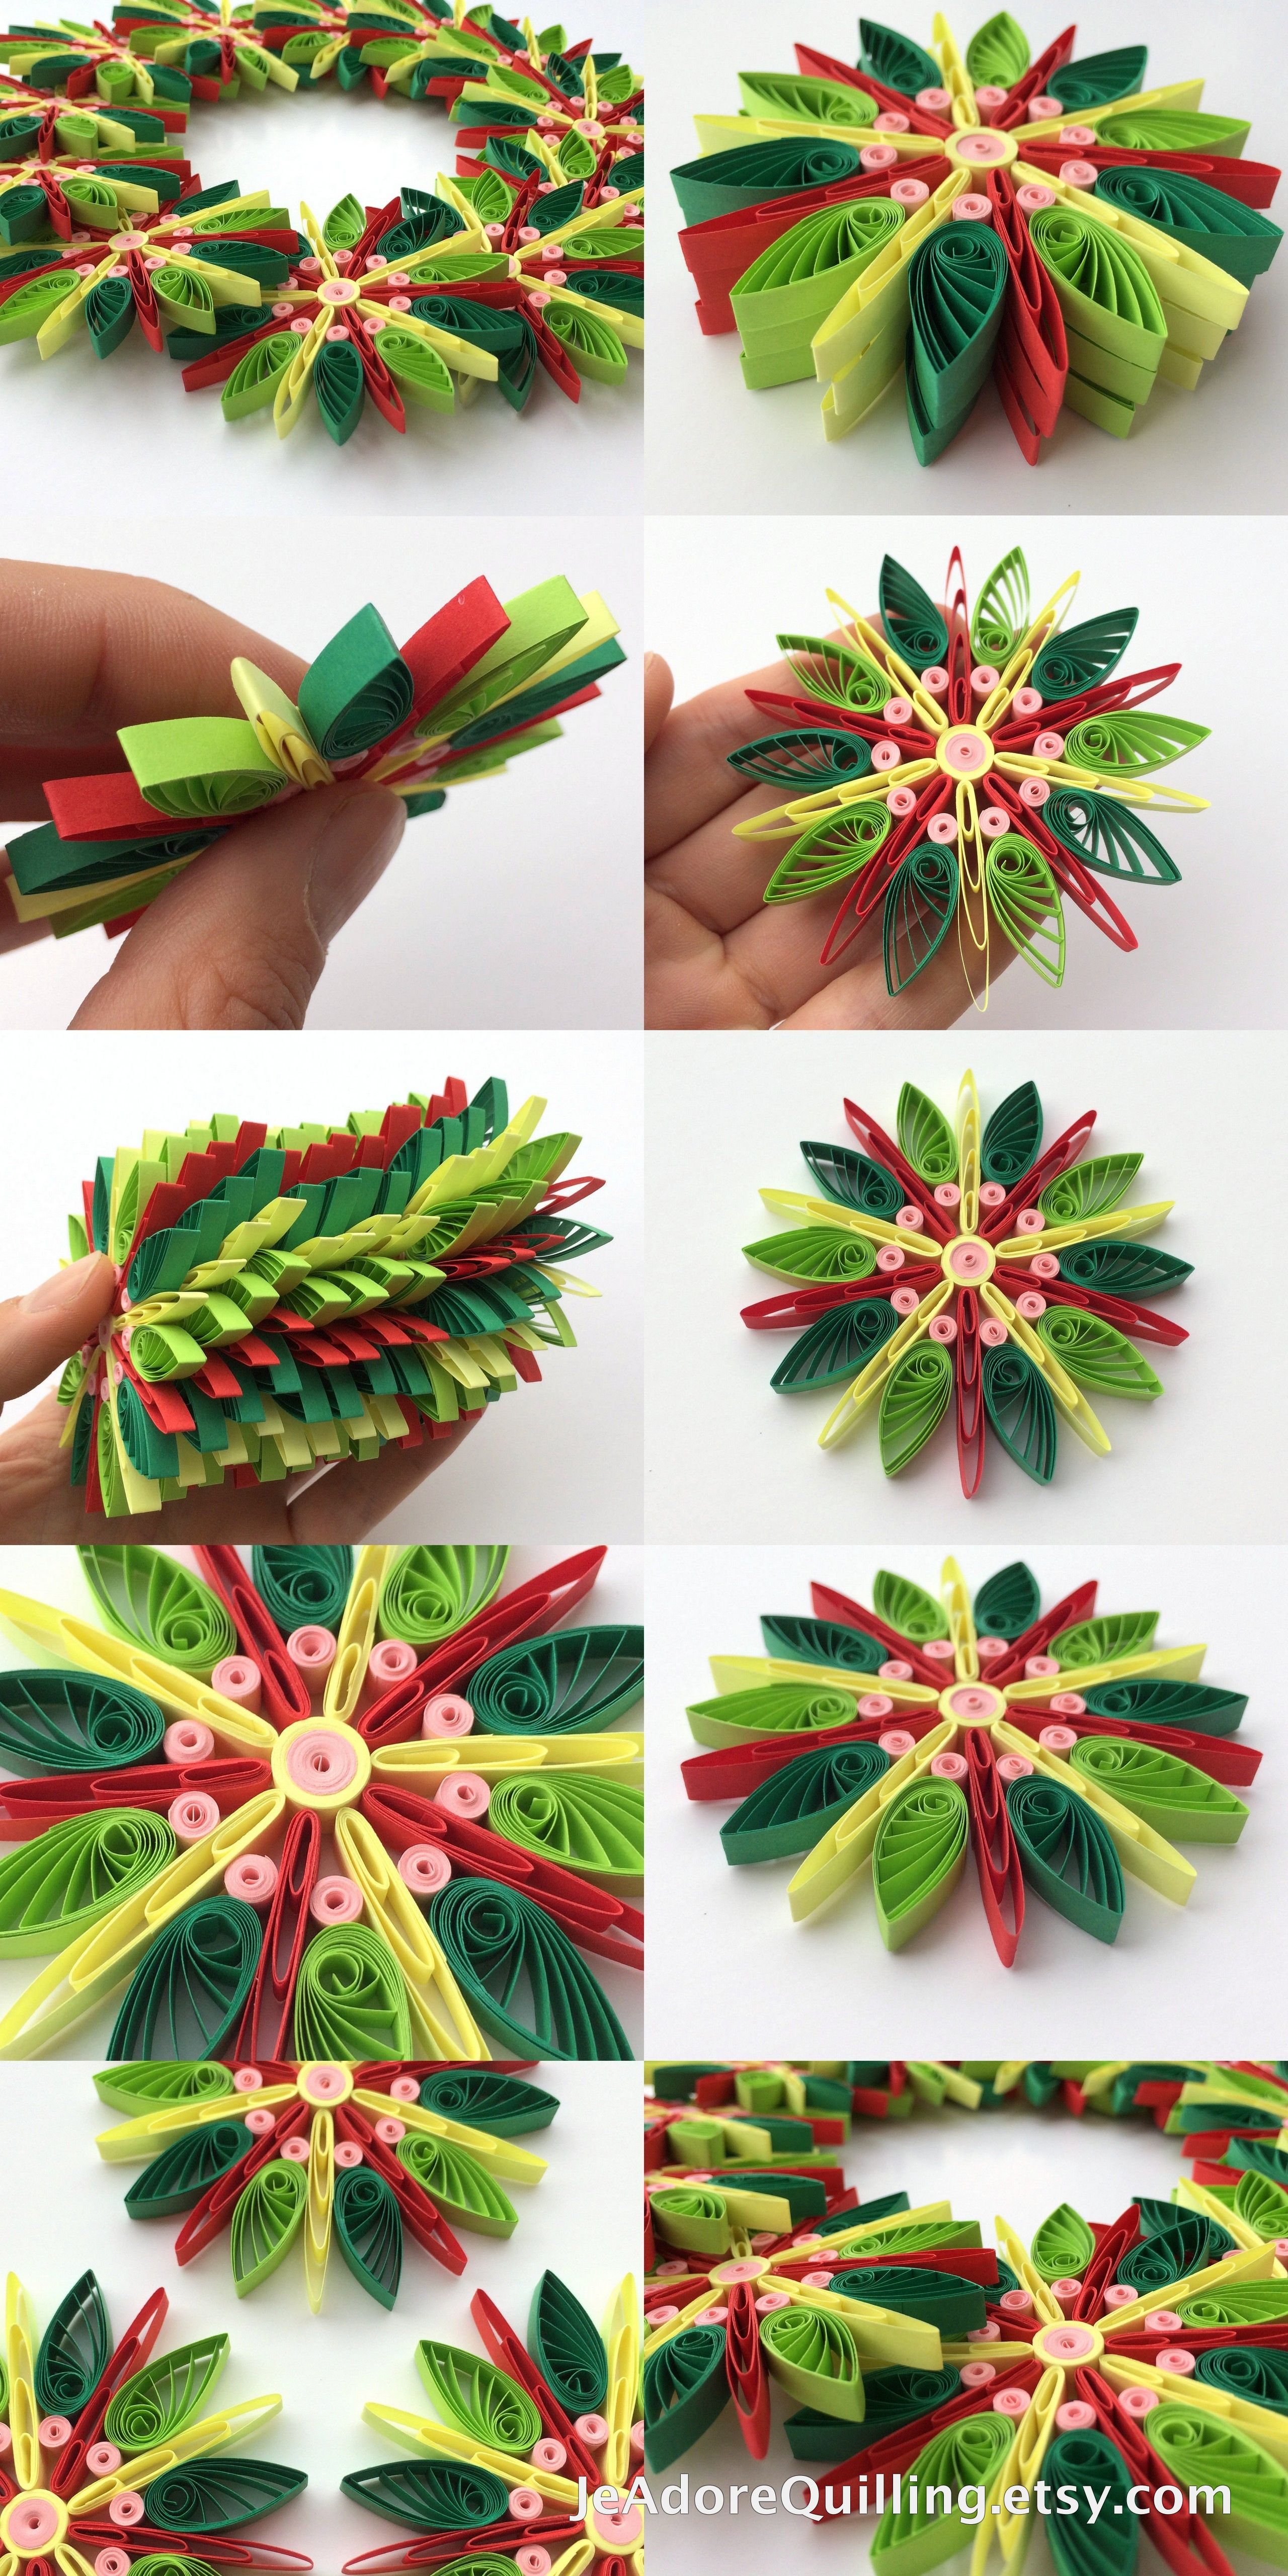 Lavoretti Di Natale Quilling.Snowflakes Green Yellow Red Christmas Tree Decoration Winter